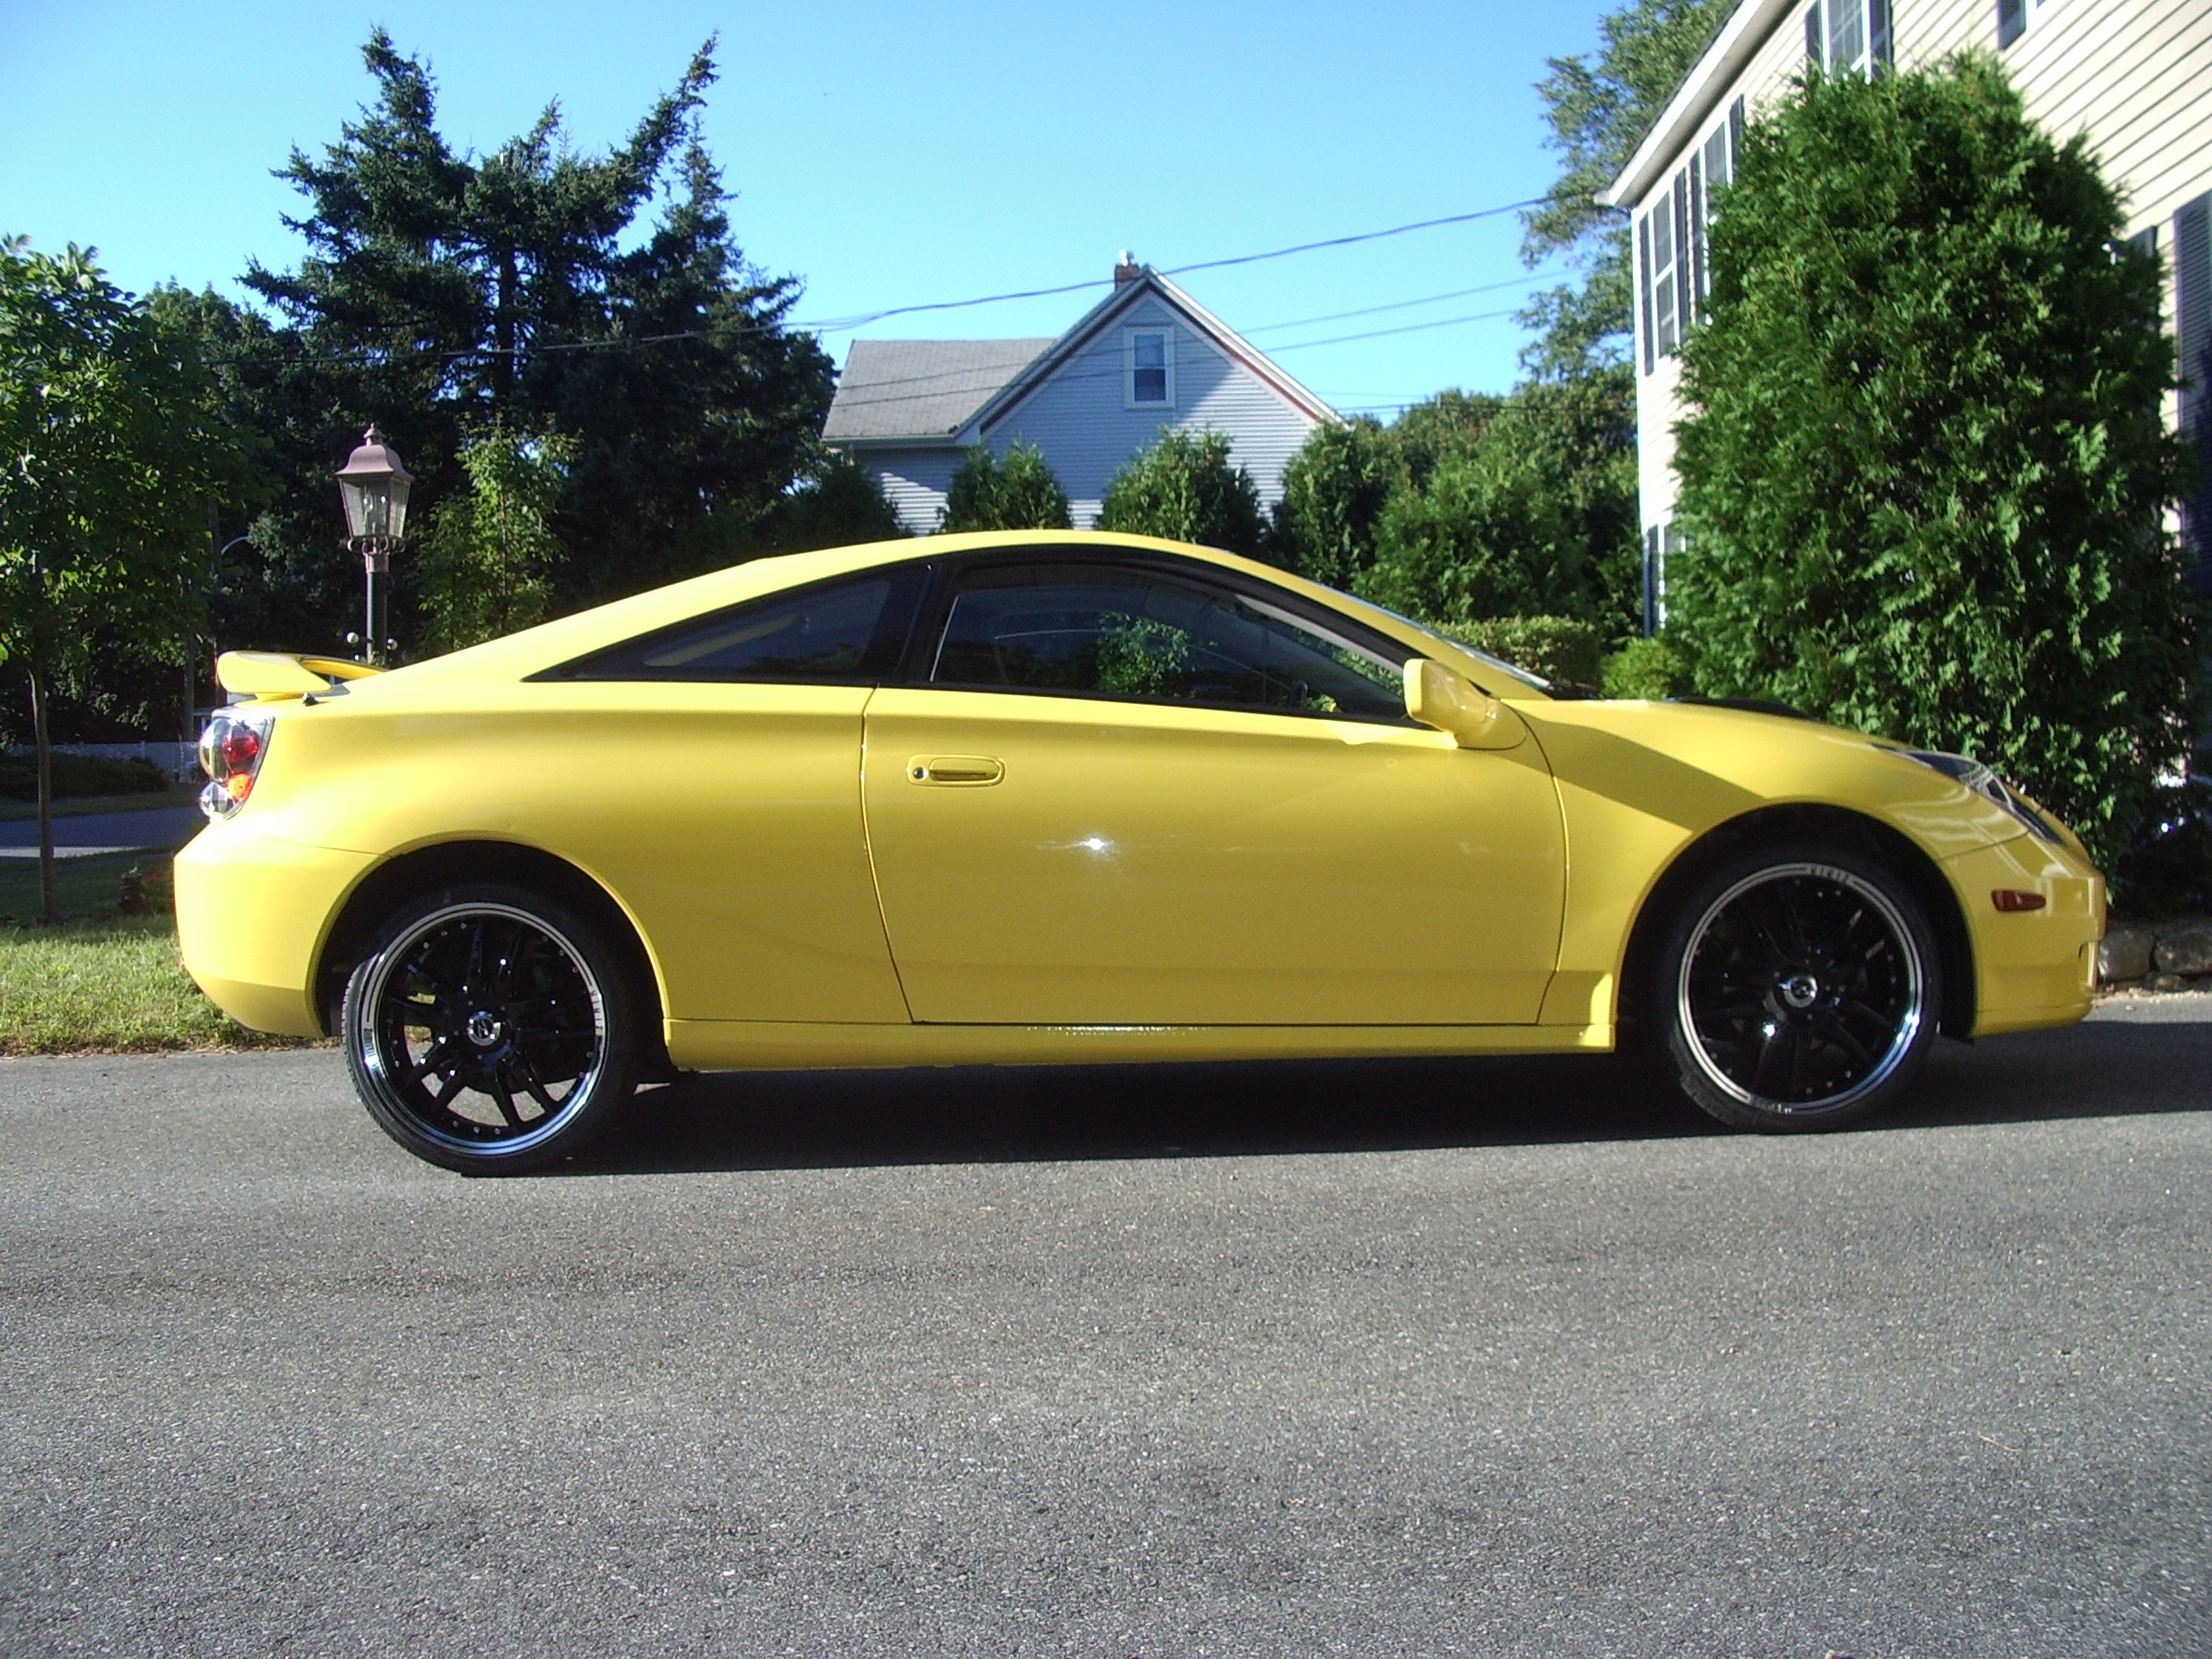 geists 39 s 2003 toyota celica page 3 in concord ma. Black Bedroom Furniture Sets. Home Design Ideas